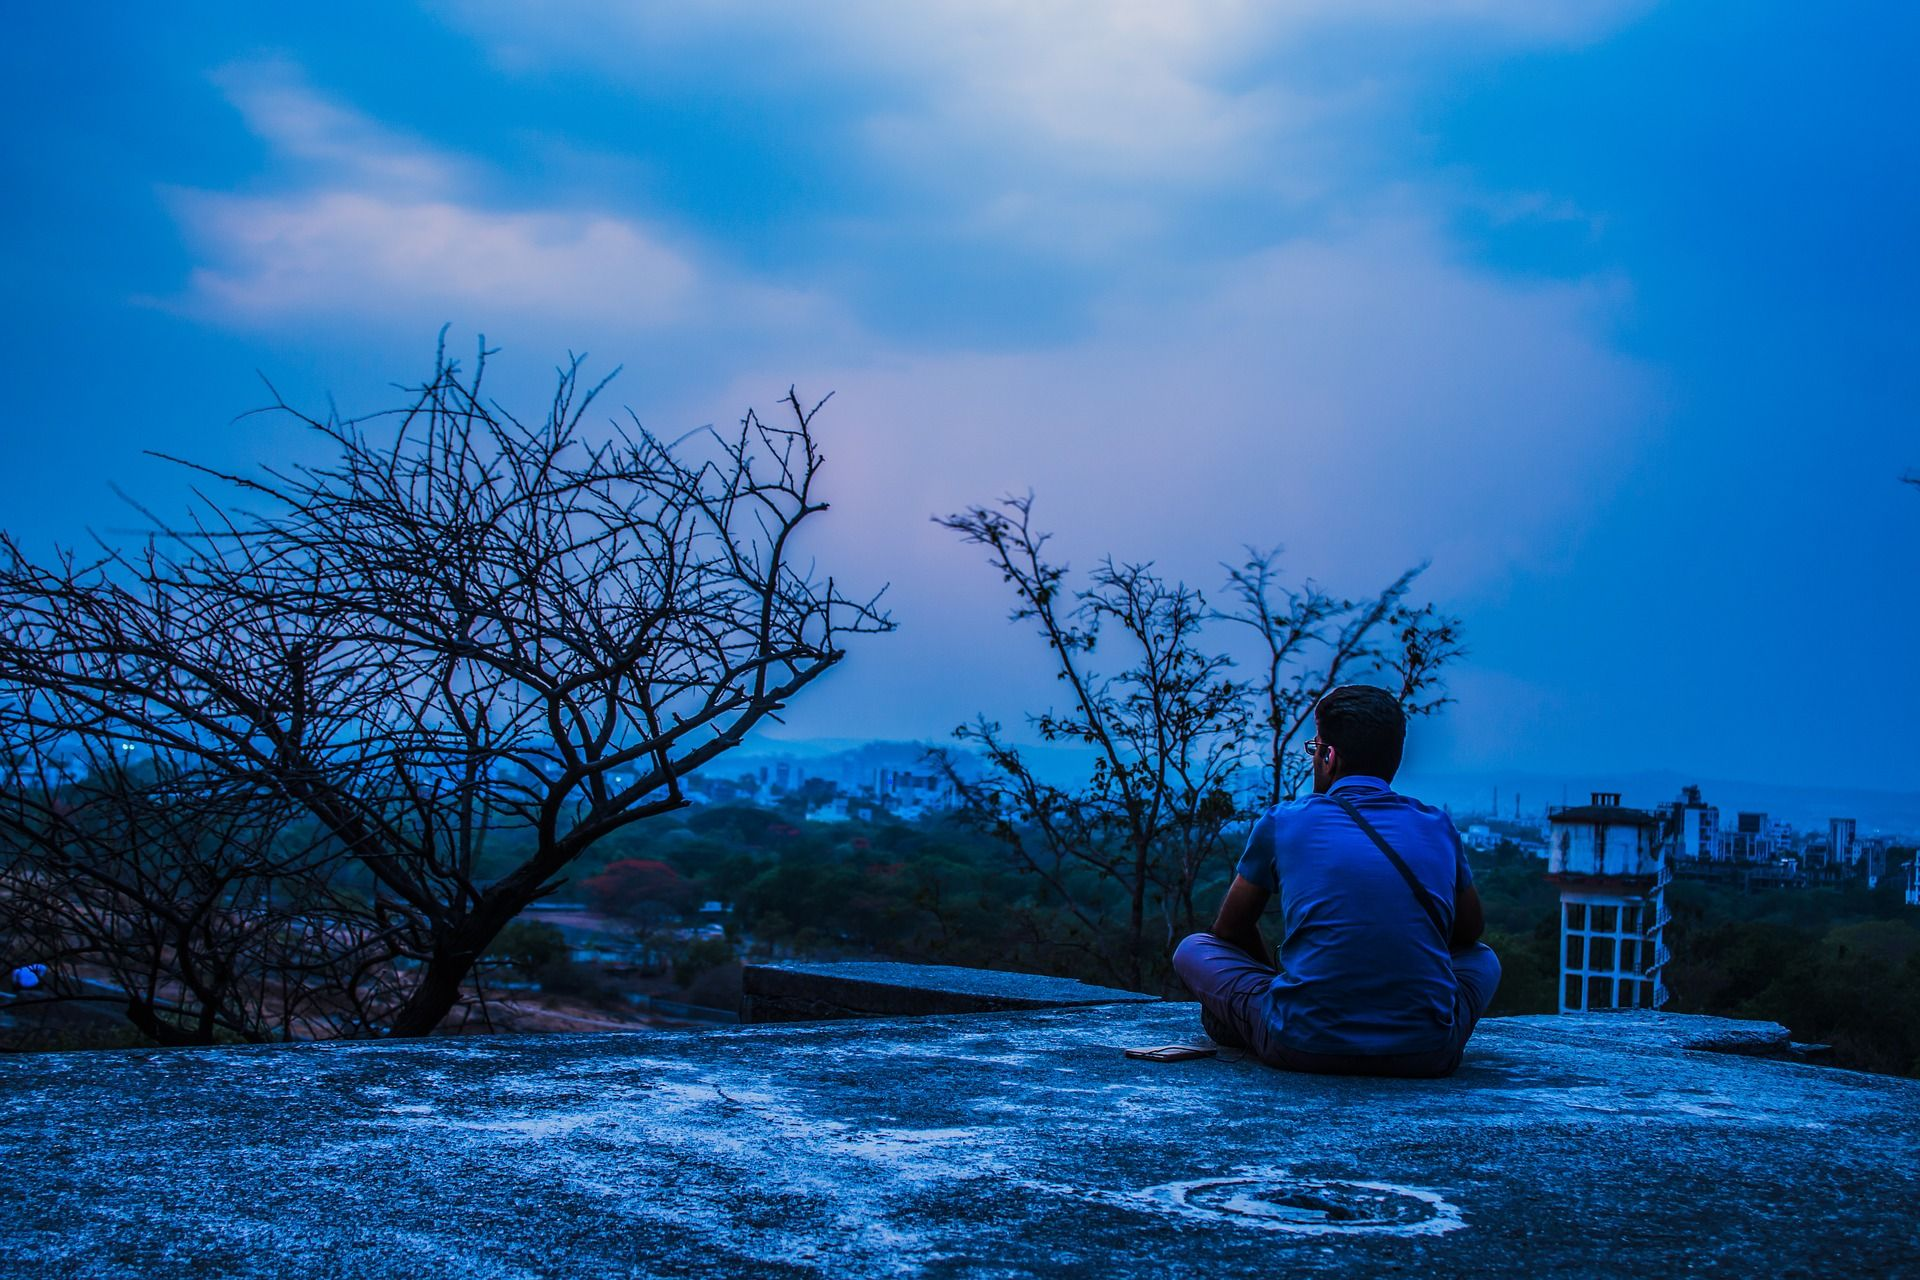 lonely feeling images